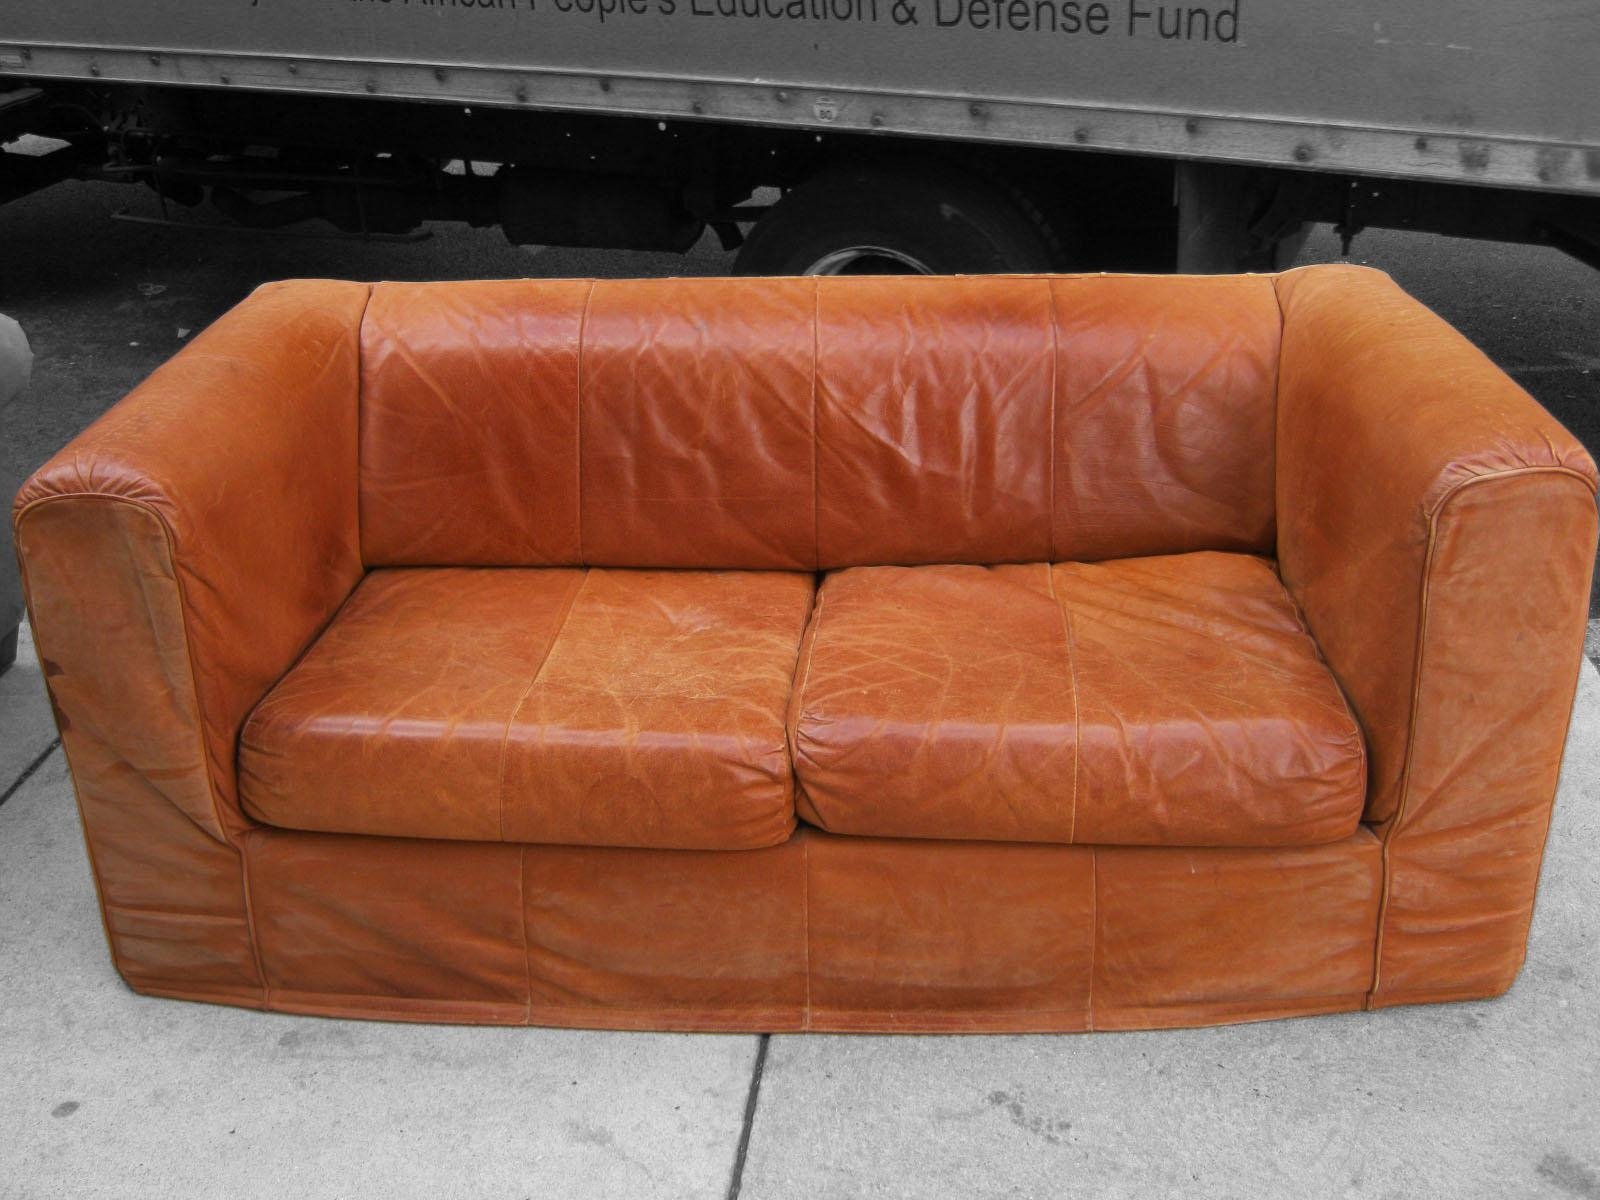 Camel Leather Sofa | Tehranmix Decoration With Camel Color Leather Sofas (View 4 of 20)